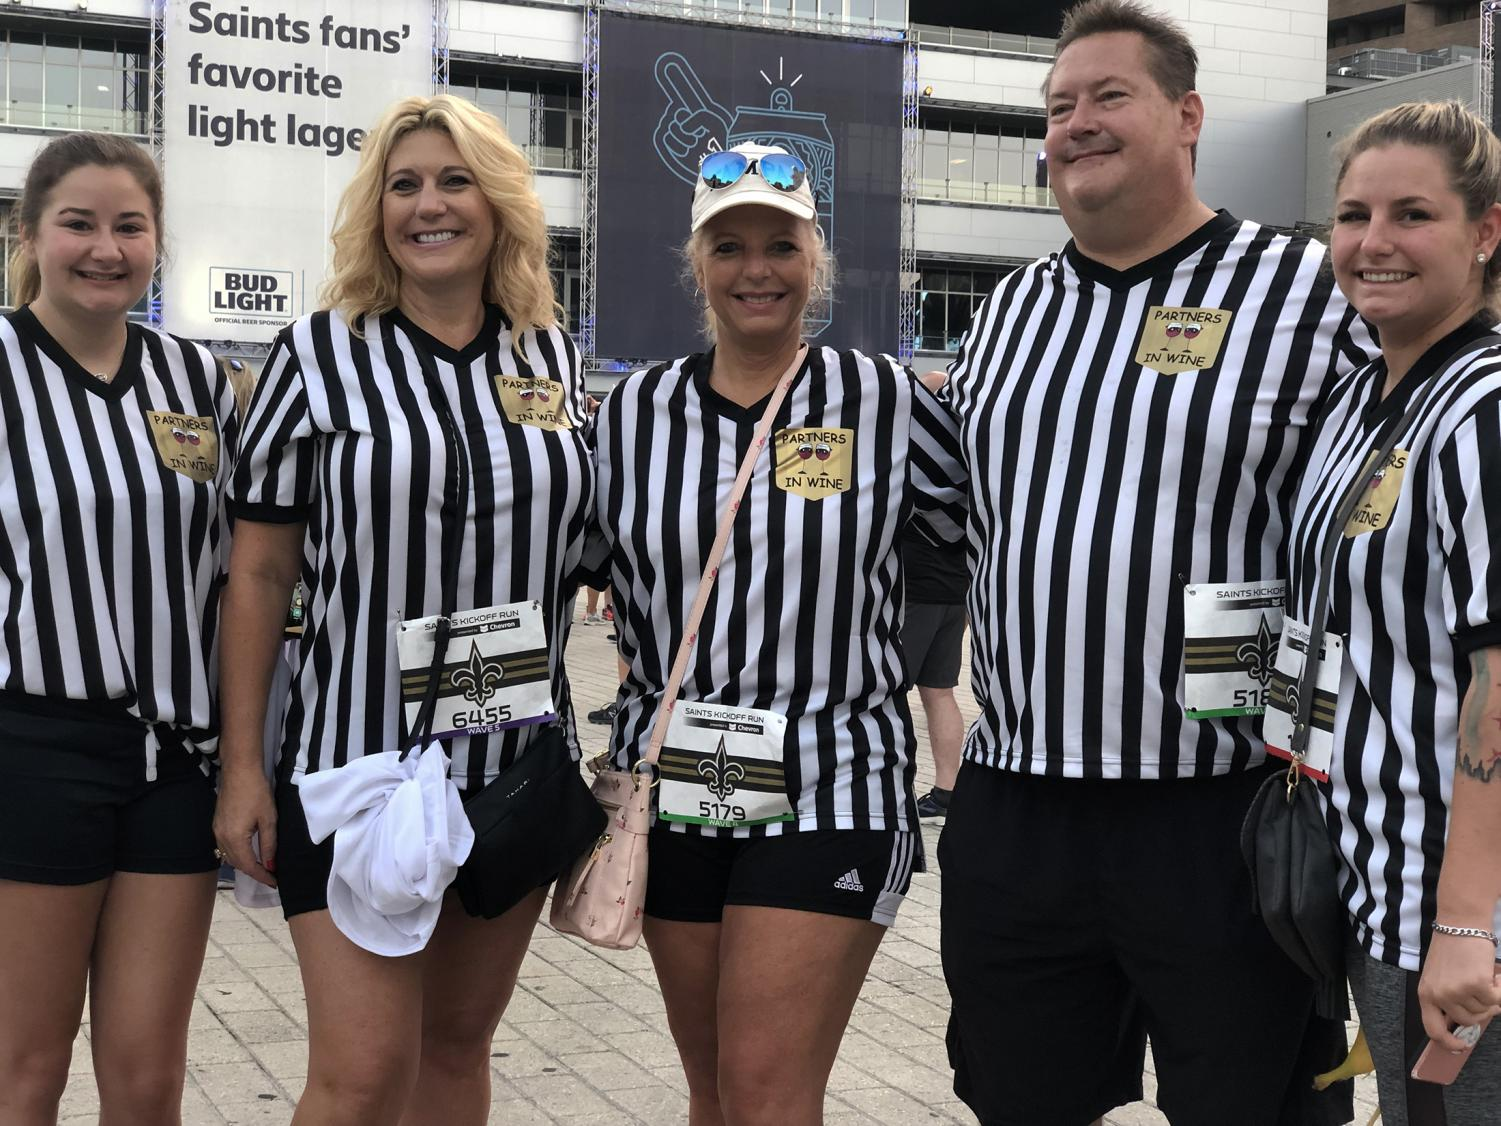 Jennifer Dutchover (center left) and Kim Koplin (center) pose with their family, dressed as referees at the Saints Kickoff Run on Sept. 7. Dutchover and Koplin traveled from Biloxi, Mississippi and Chicago, Illinois respectively, for the run. Sam Lucio/The Maroon Photo credit: Sam Lucio